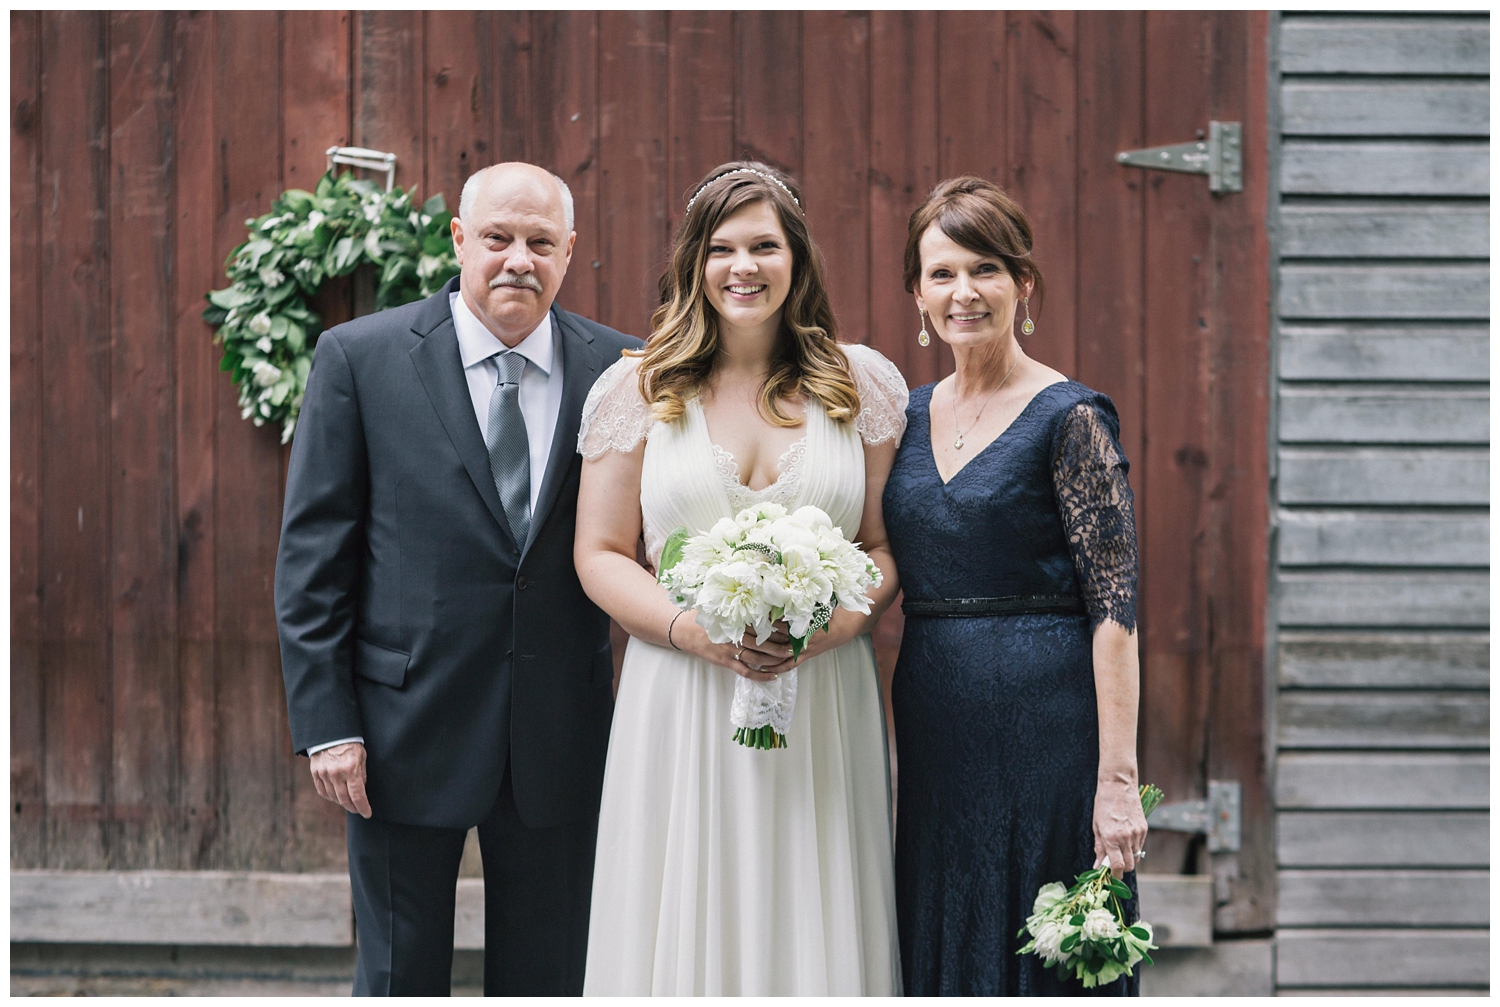 The Roxbury Barn Wedding Venue | Bride and Parents | Barn Wedding